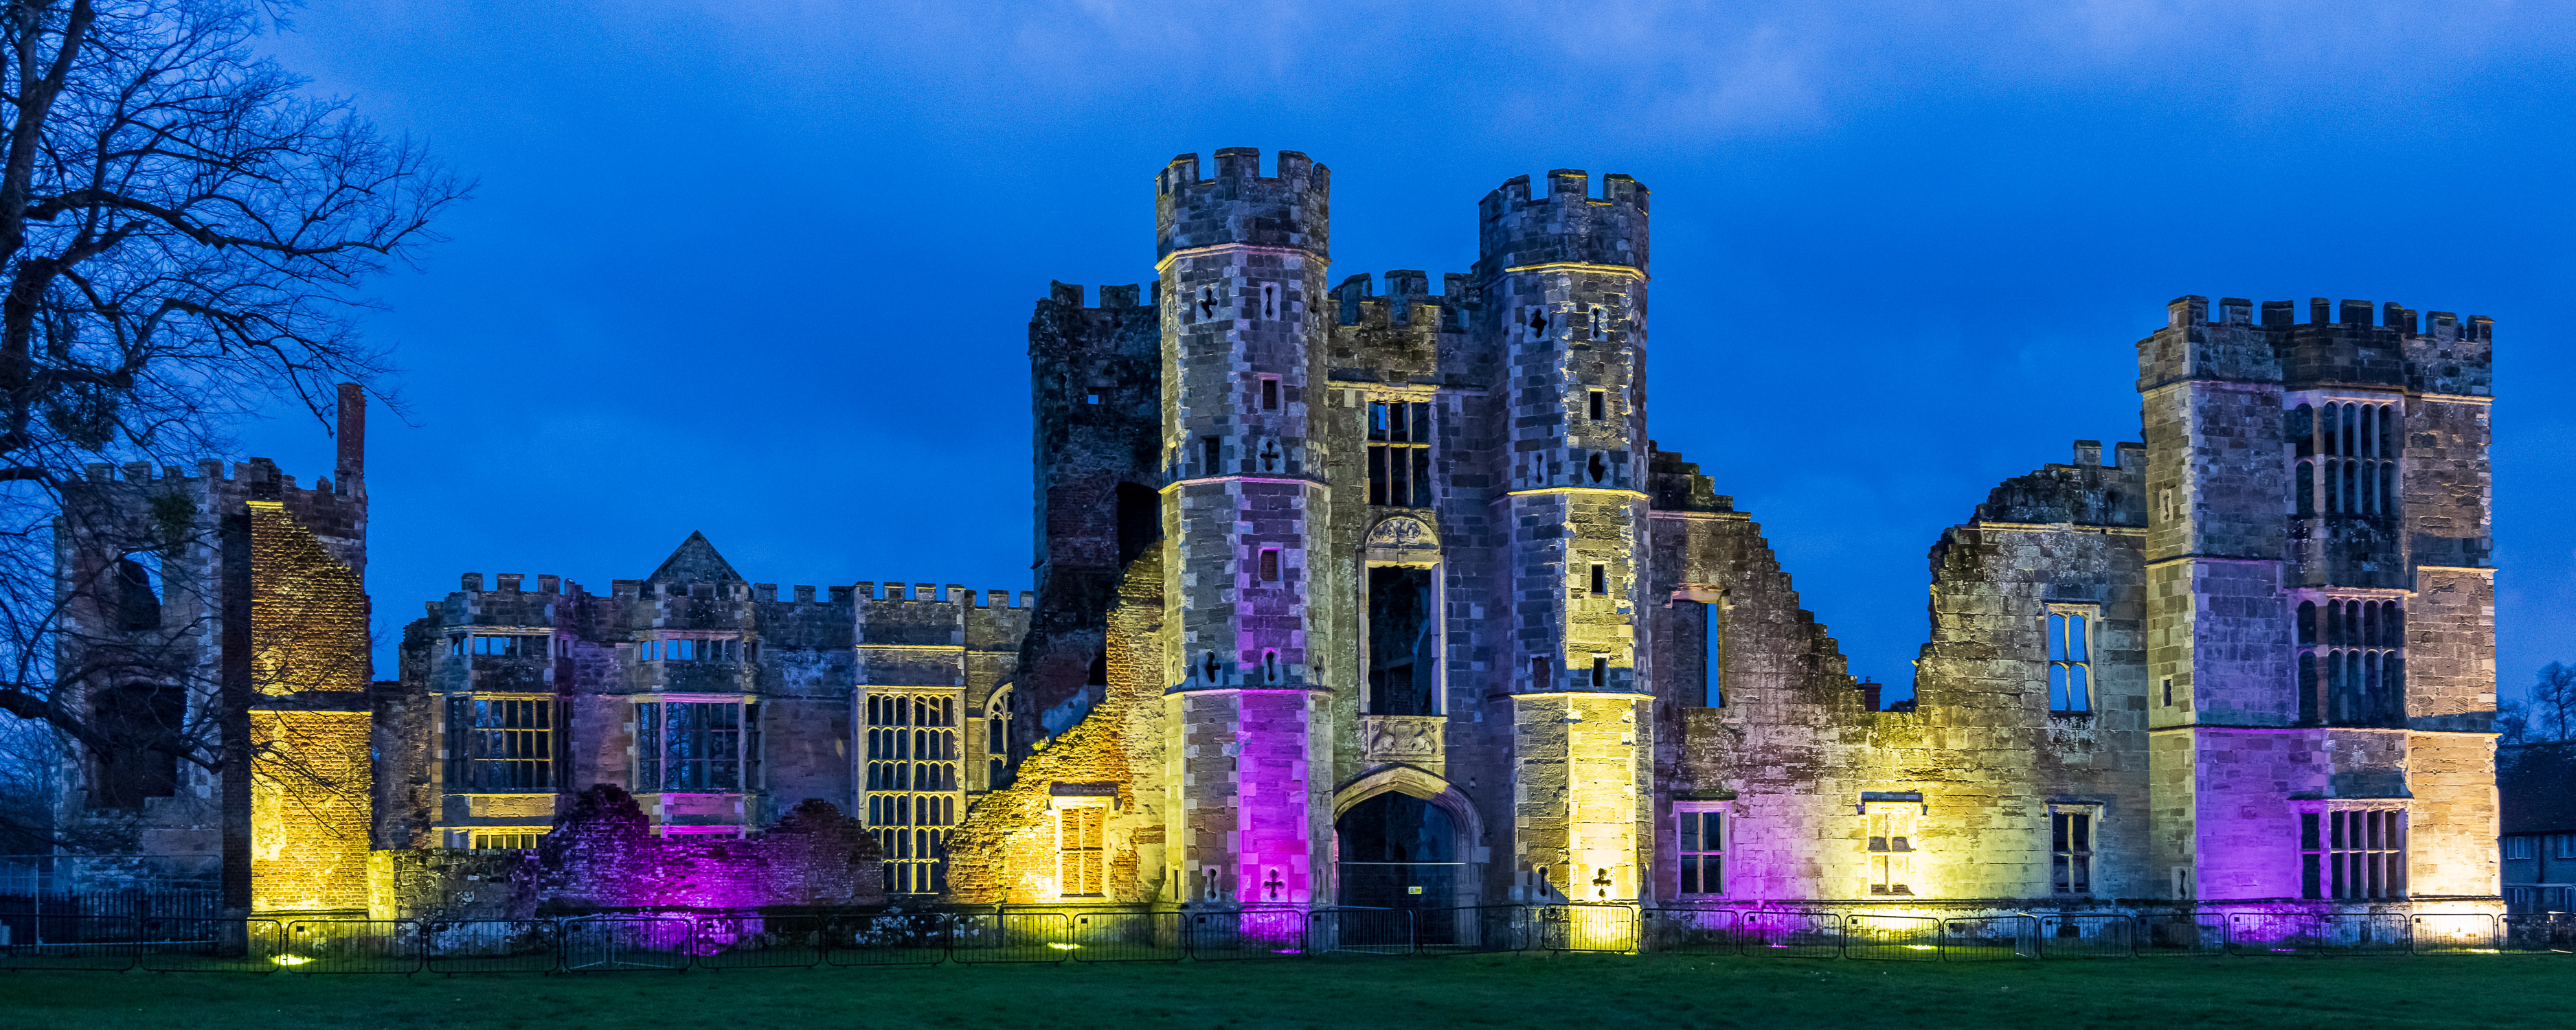 The floodlit ruins of Cowdray Castle